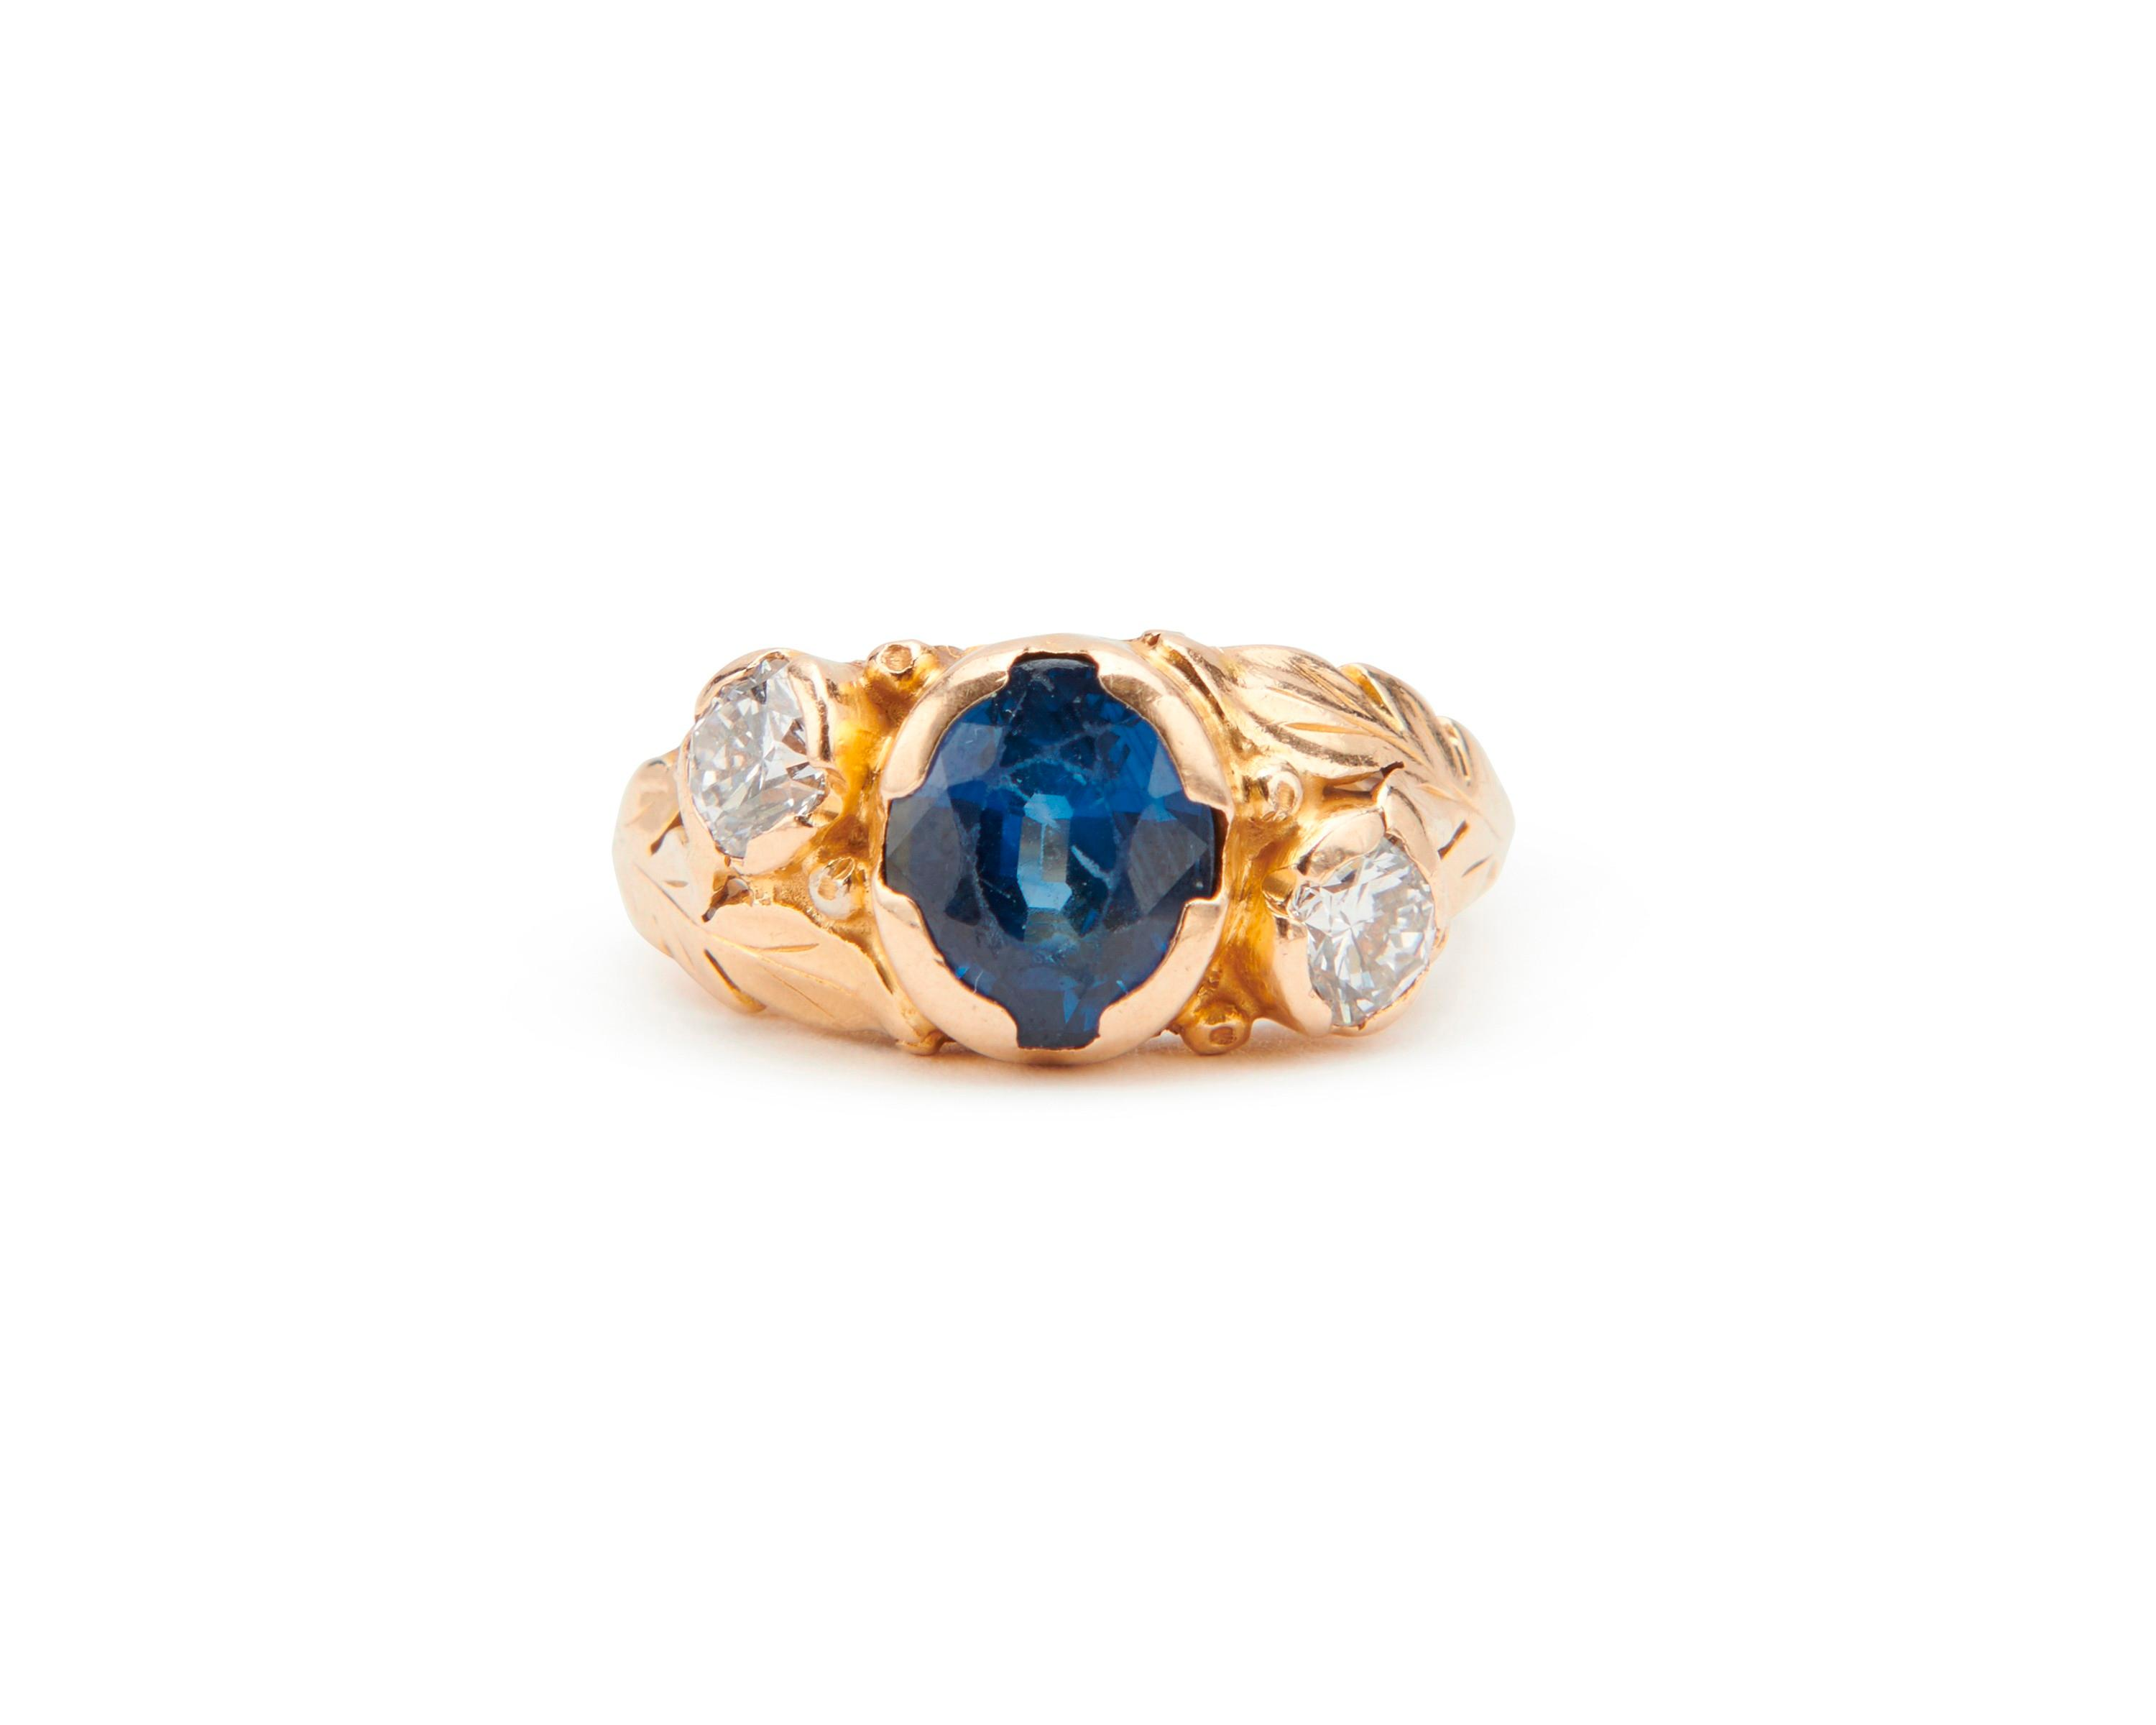 SUSAN PEABODY OAKES 14K Gold, Sapphire, and Diamond Ring